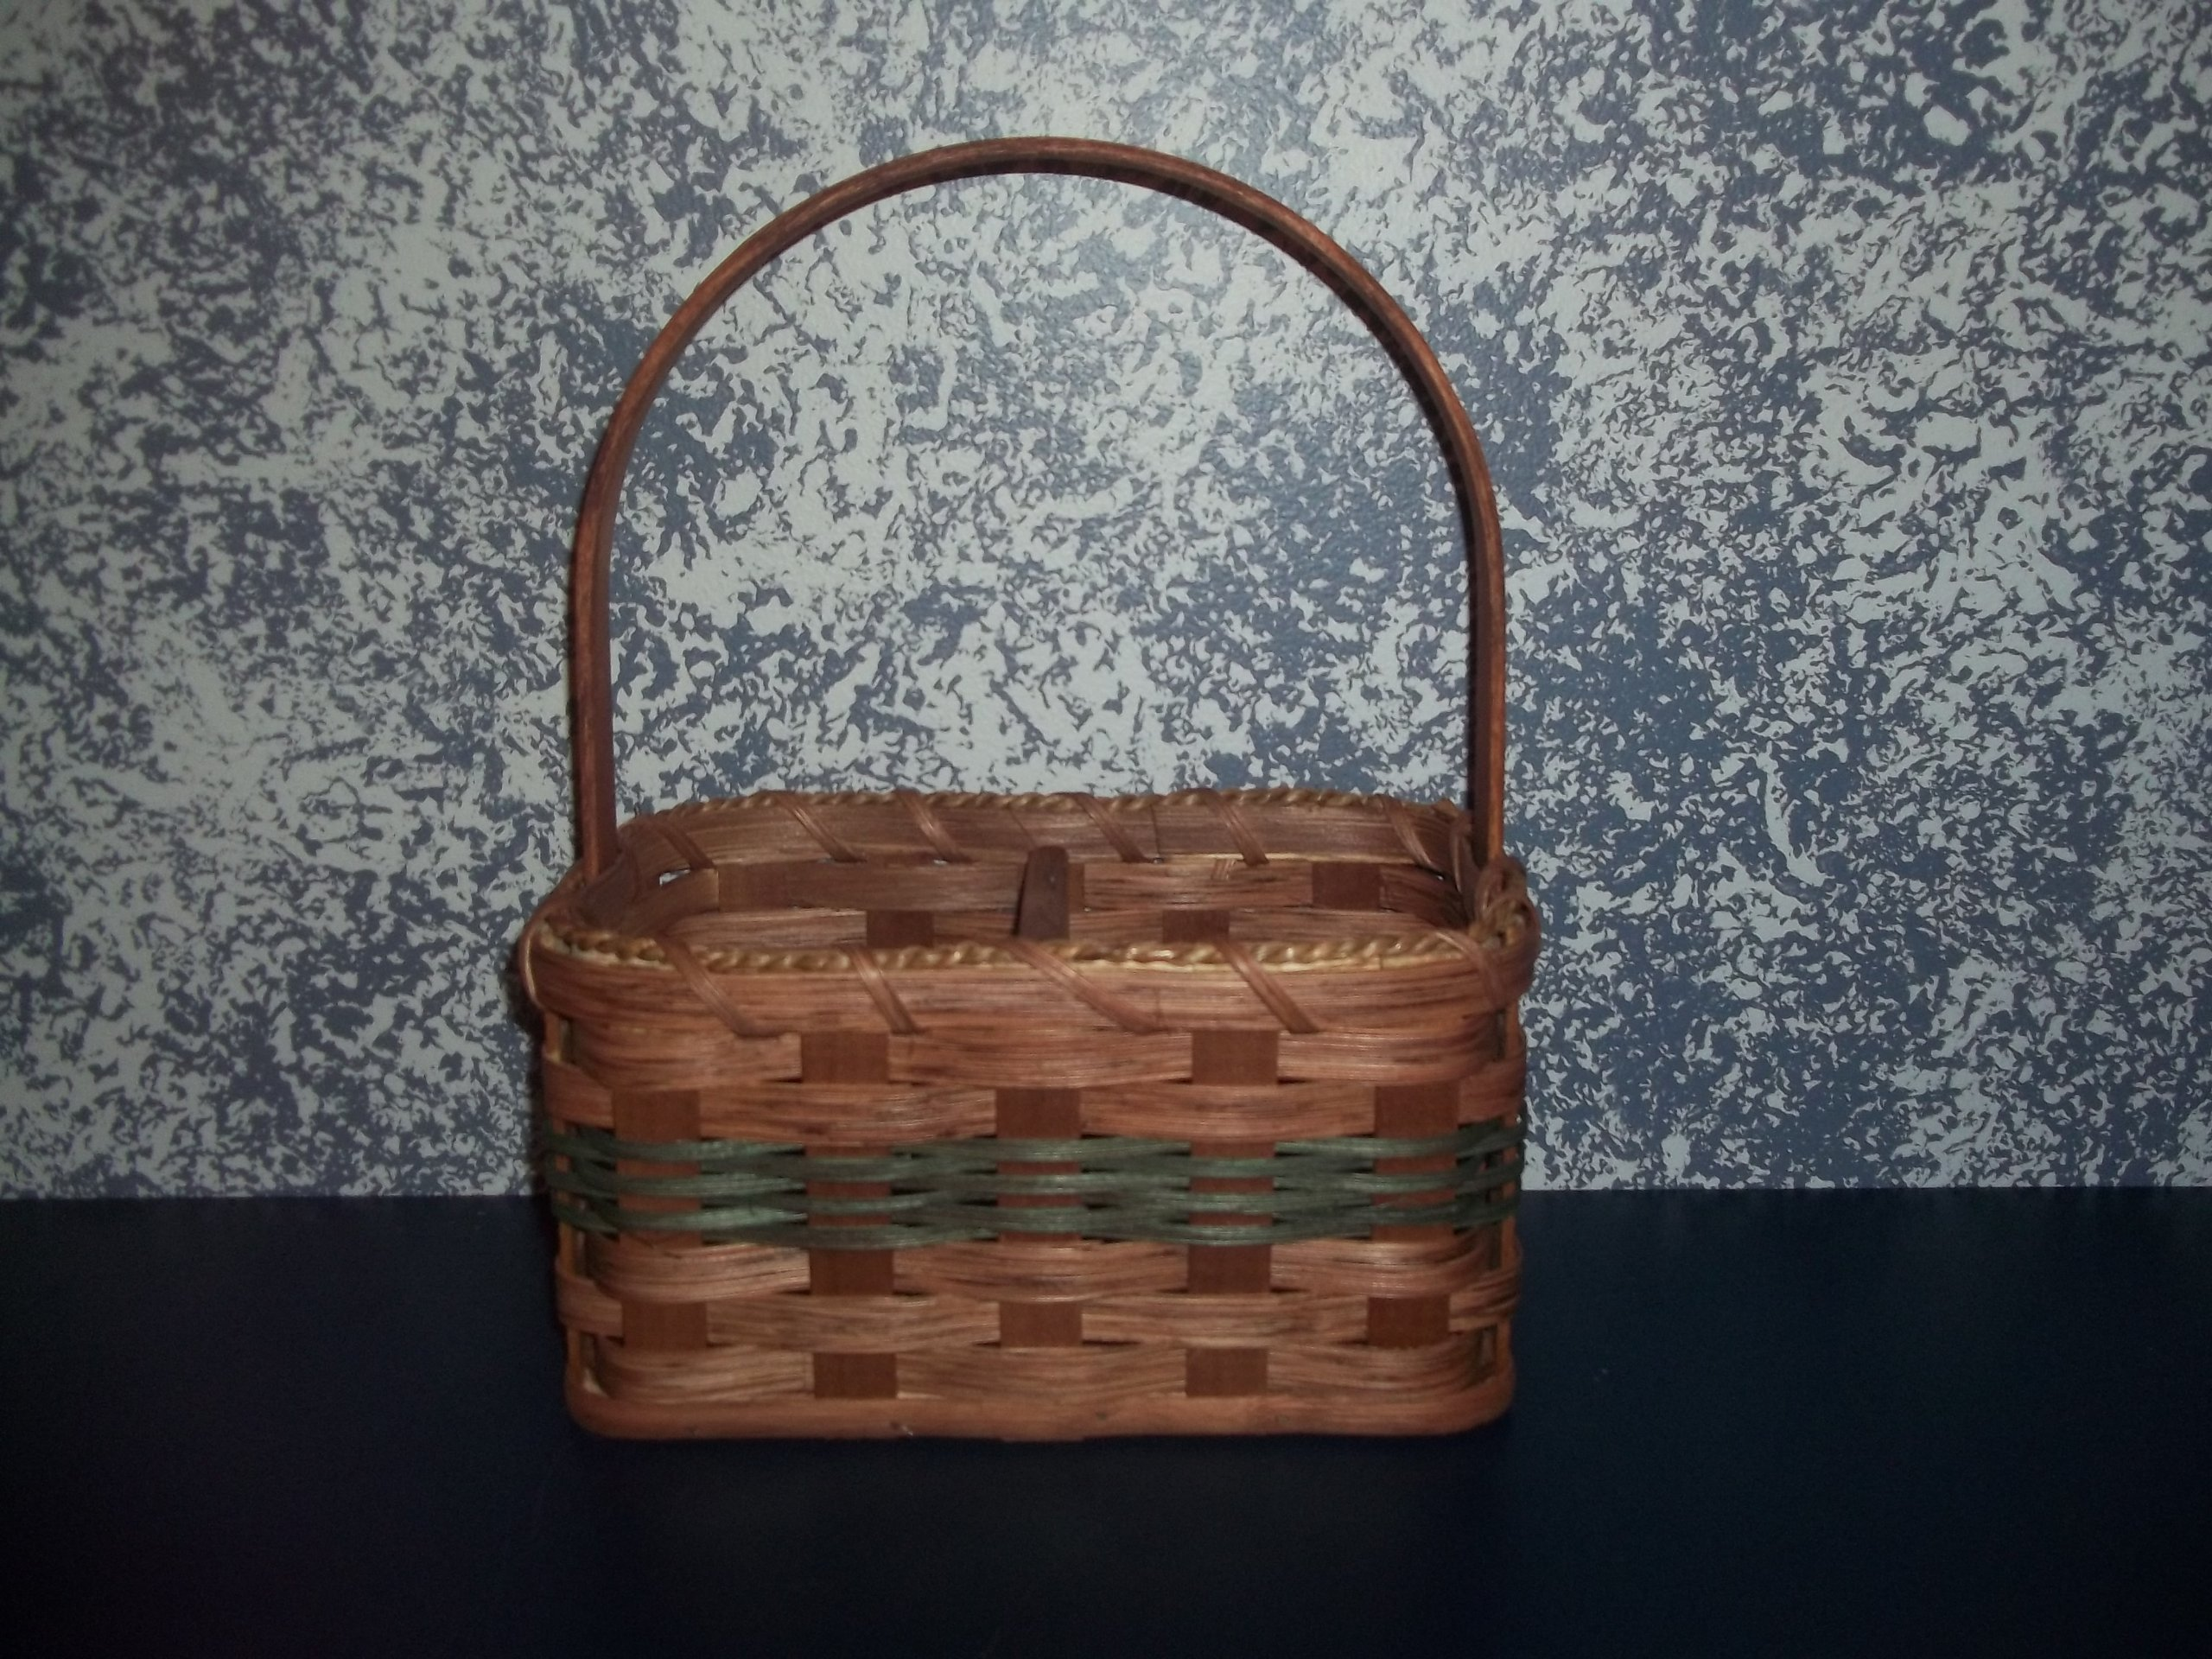 Handmade Jam/jelly Basket with Divider. Measures 9 1/2'' X 5 1/2'' X 5'' Tall. This Country Basket Will Add a Touch of Rustic Charm to Your Dining Room Table Holding Your Jams and Jellies.